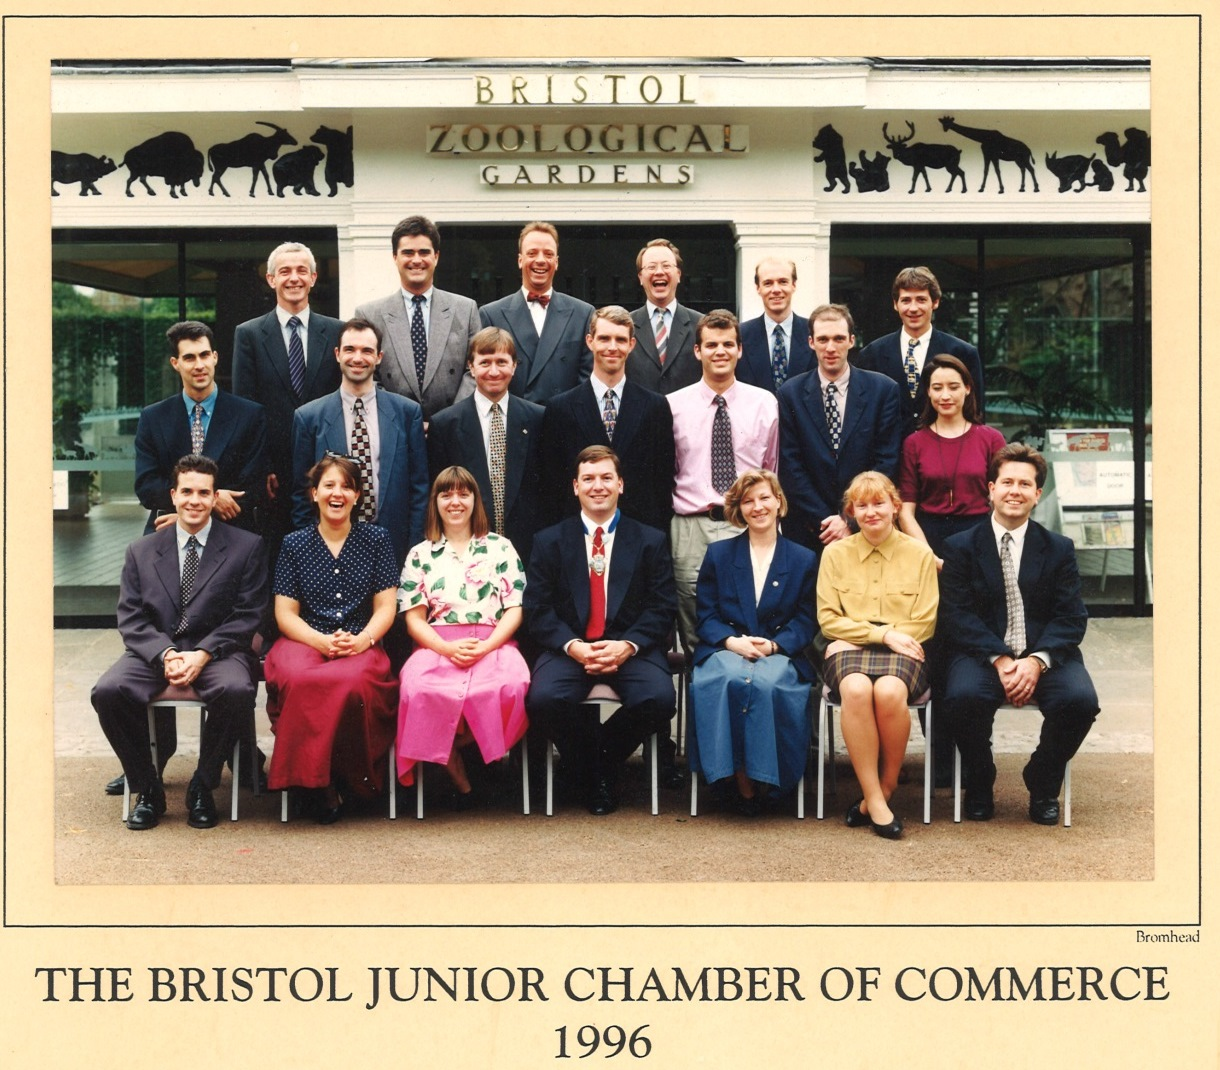 Rolling back the years: Former Junior Chamber members reunite for new team photo 20 years on